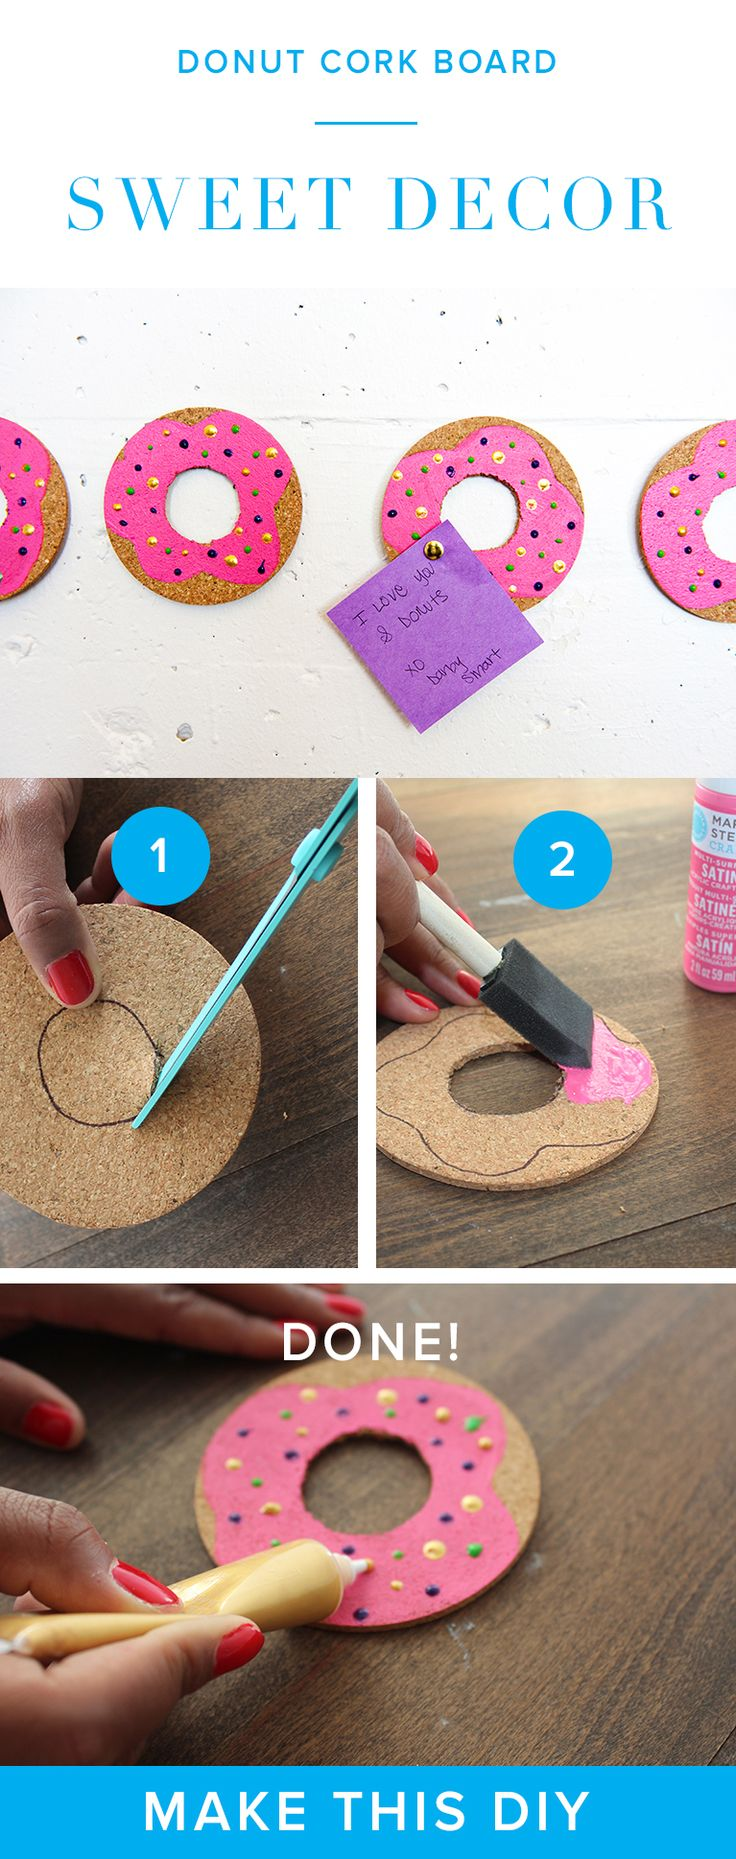 Go Do Nuts And Spruce Up Your Office Or Dorm Room Diy